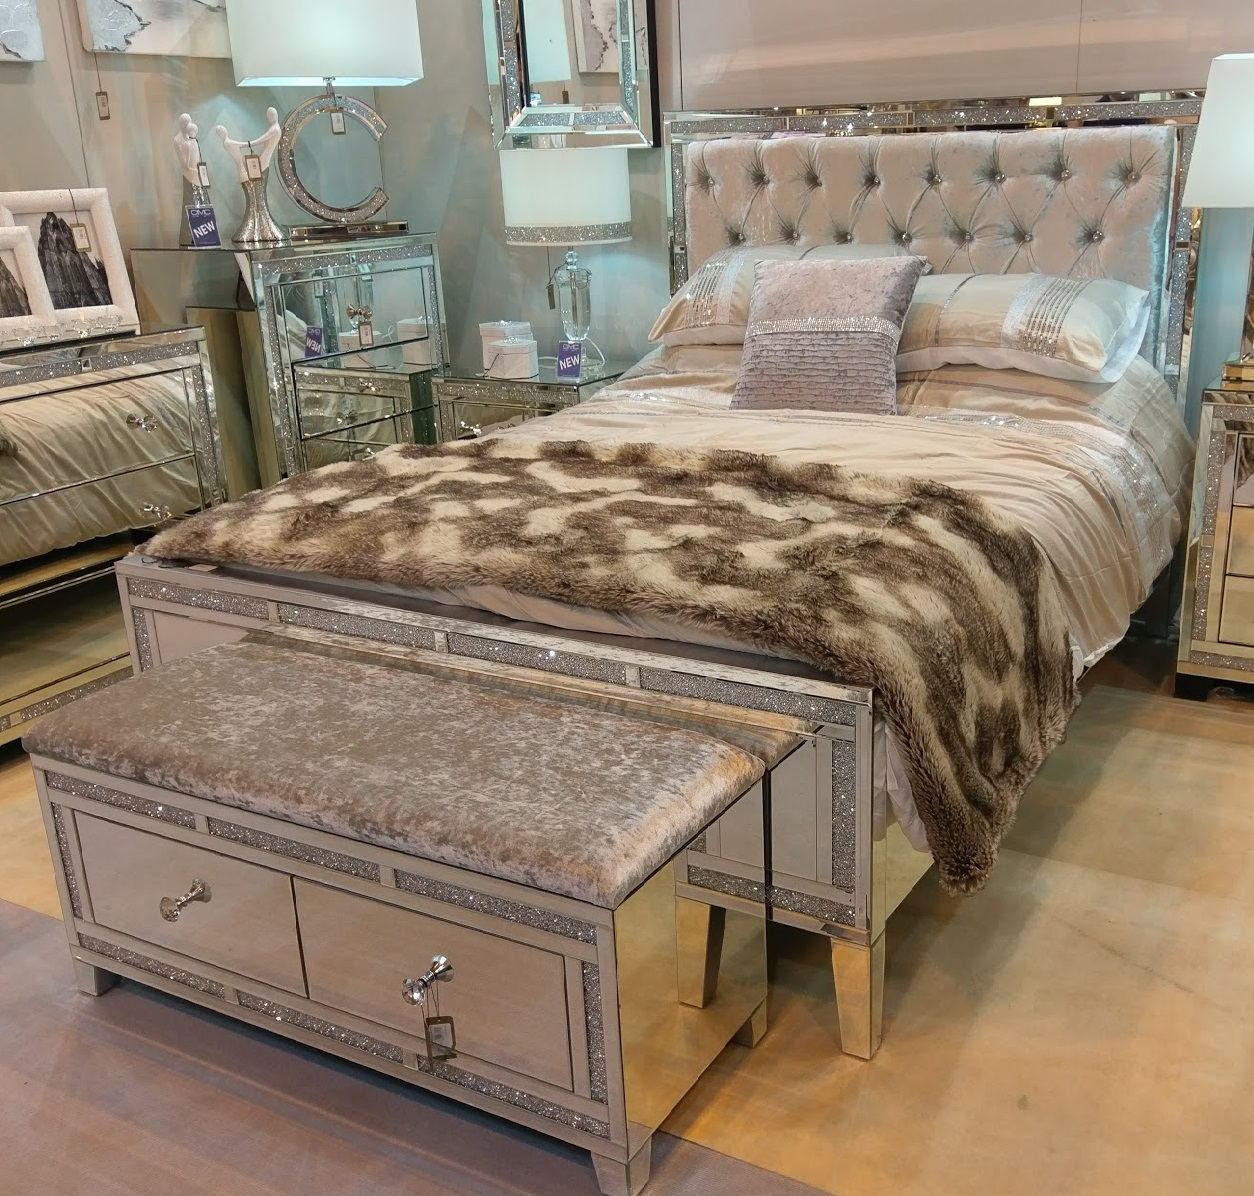 Mirrored Tuscany King Size Bed With Swarovski Crystals